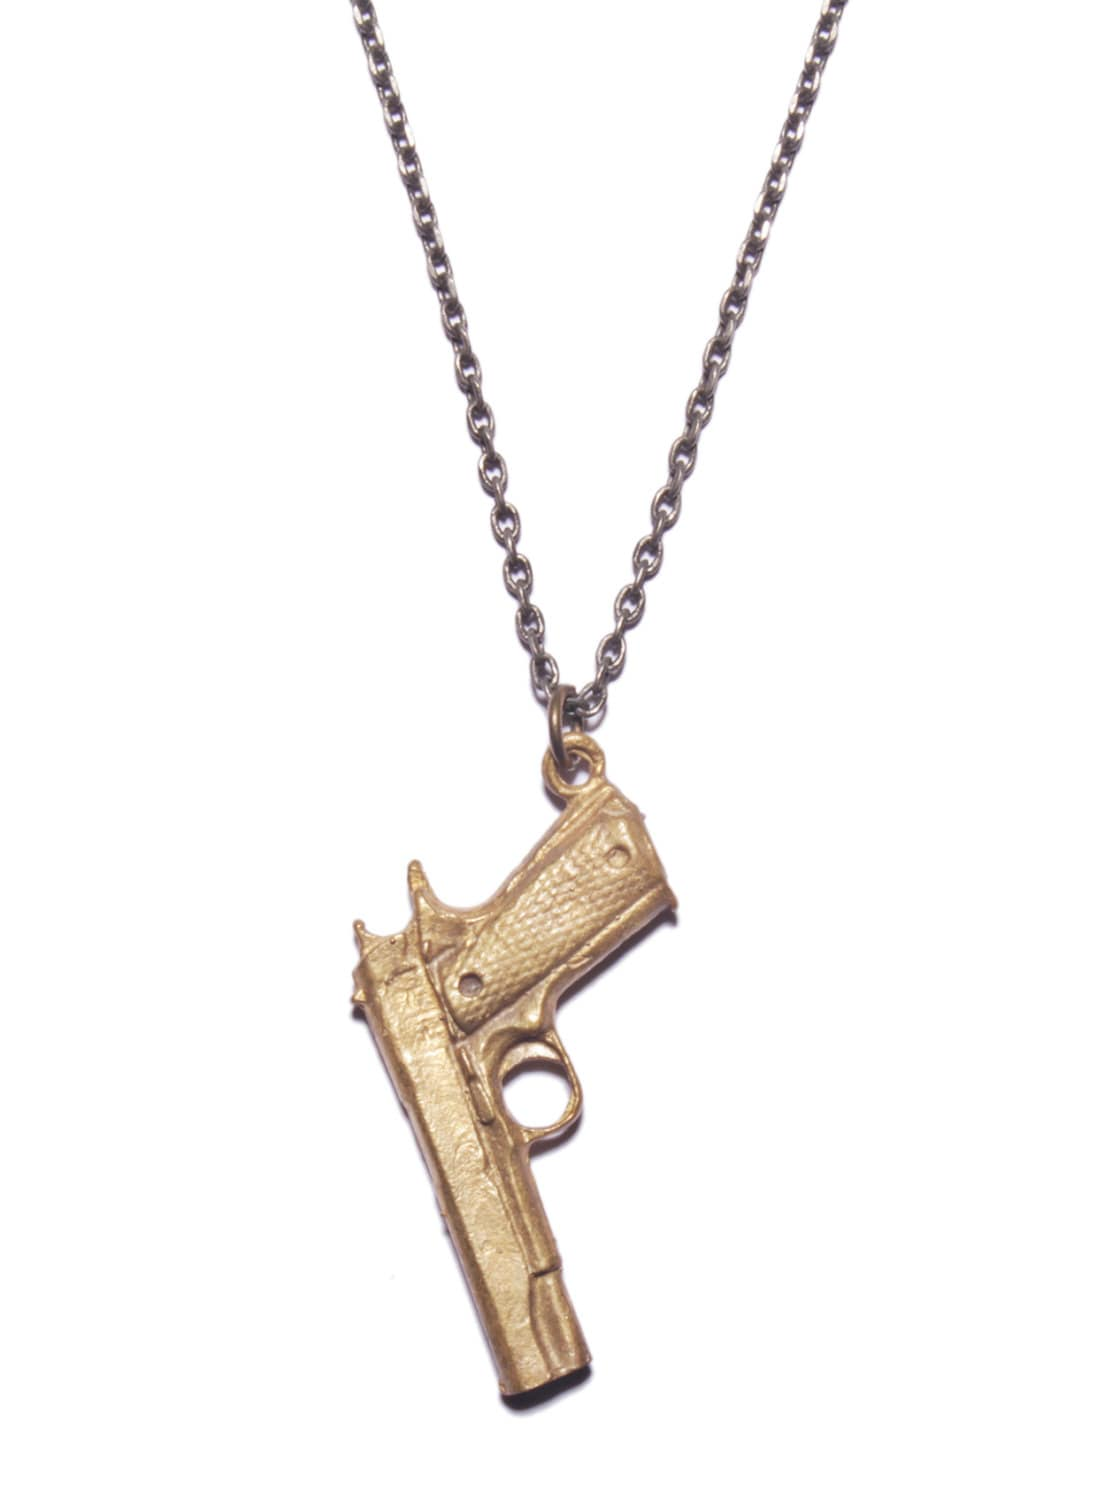 s gun necklace jewelry for 45 caliber style